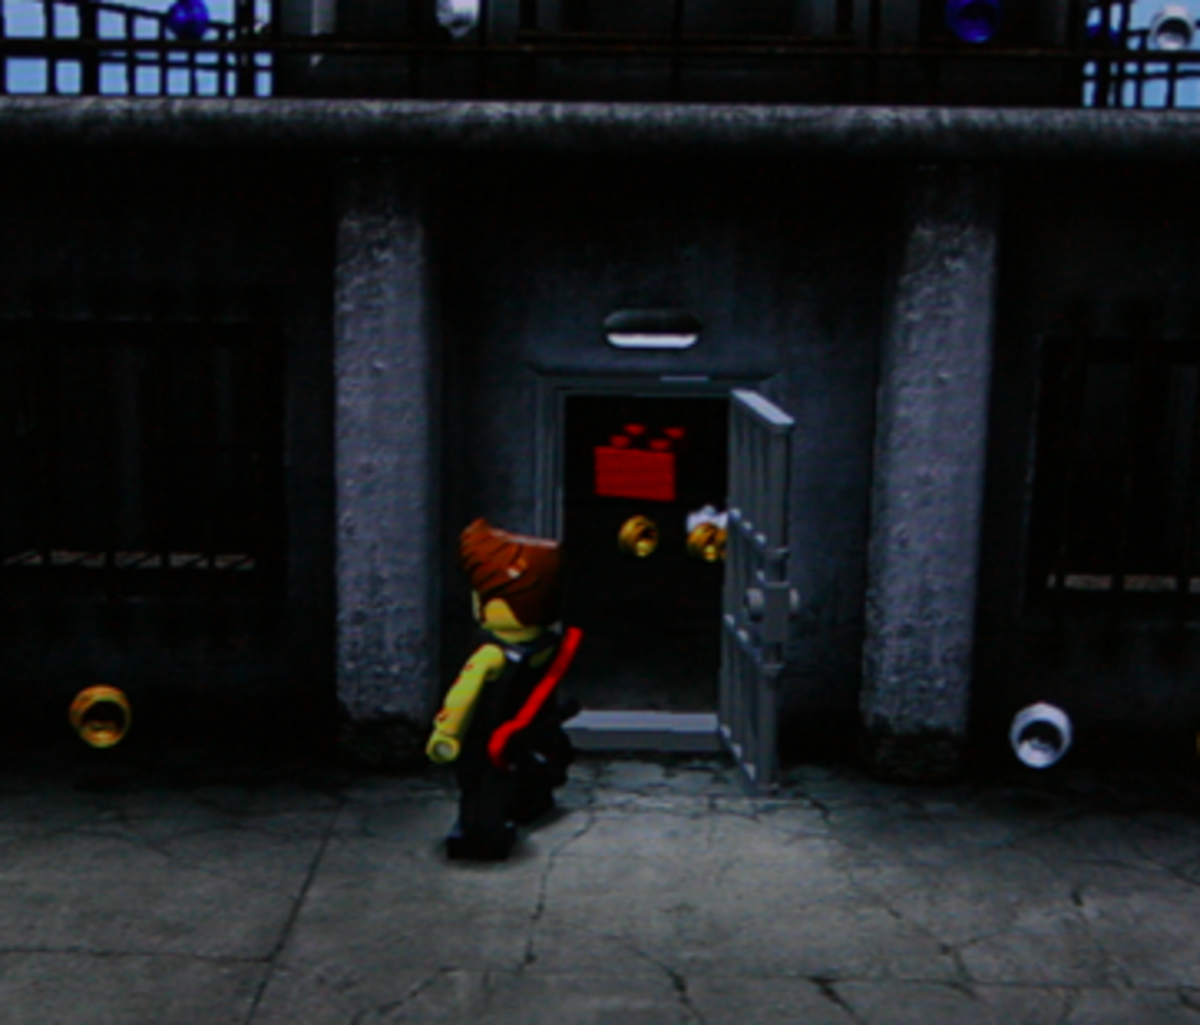 LEGO City Undercover walkthrough: Red Brick Locations